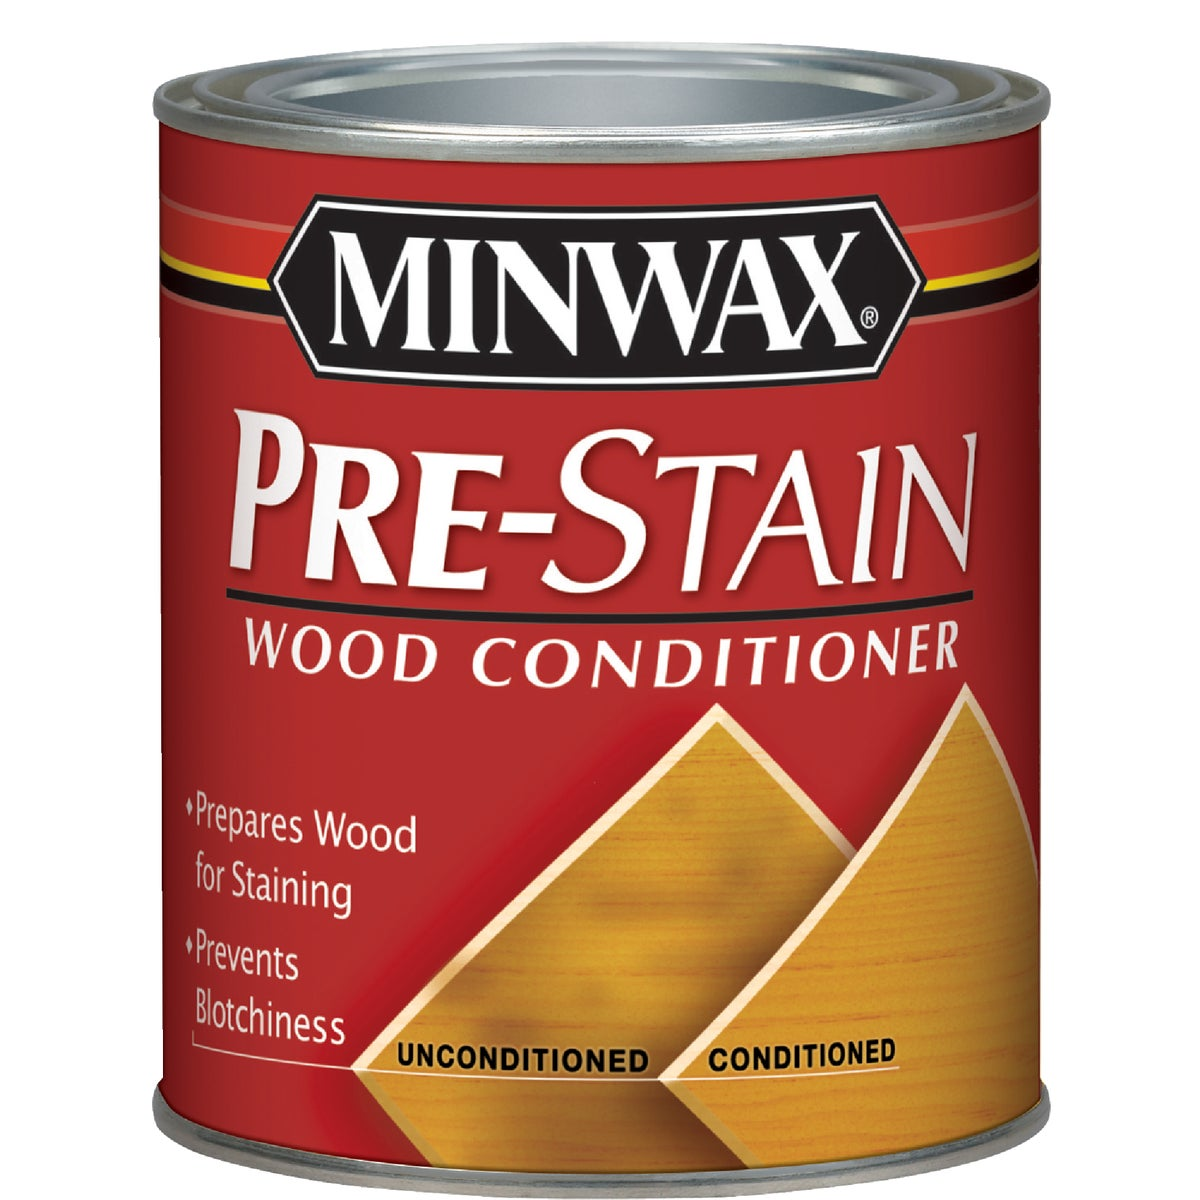 Minwax 41500 Pre-Stain Wood Conditioner, 1 Pint